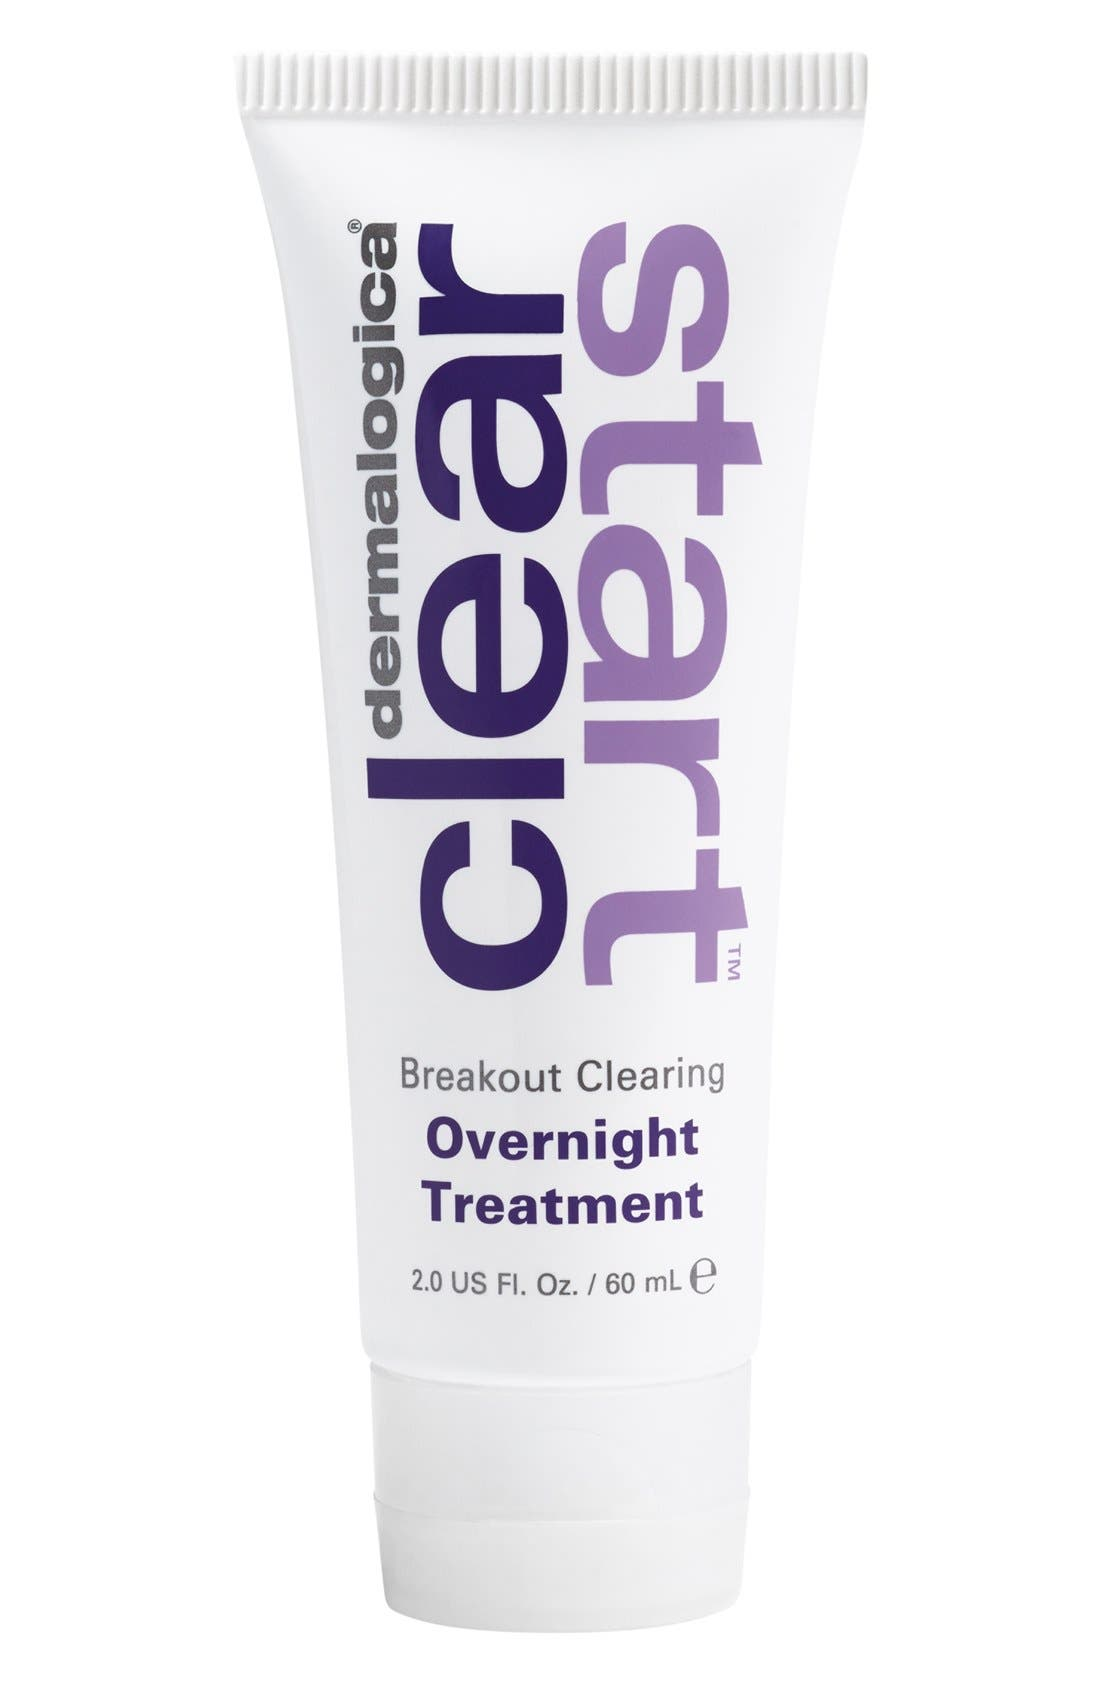 dermalogica® 'Clear Start™' Breakout Clearing Overnight Treatment